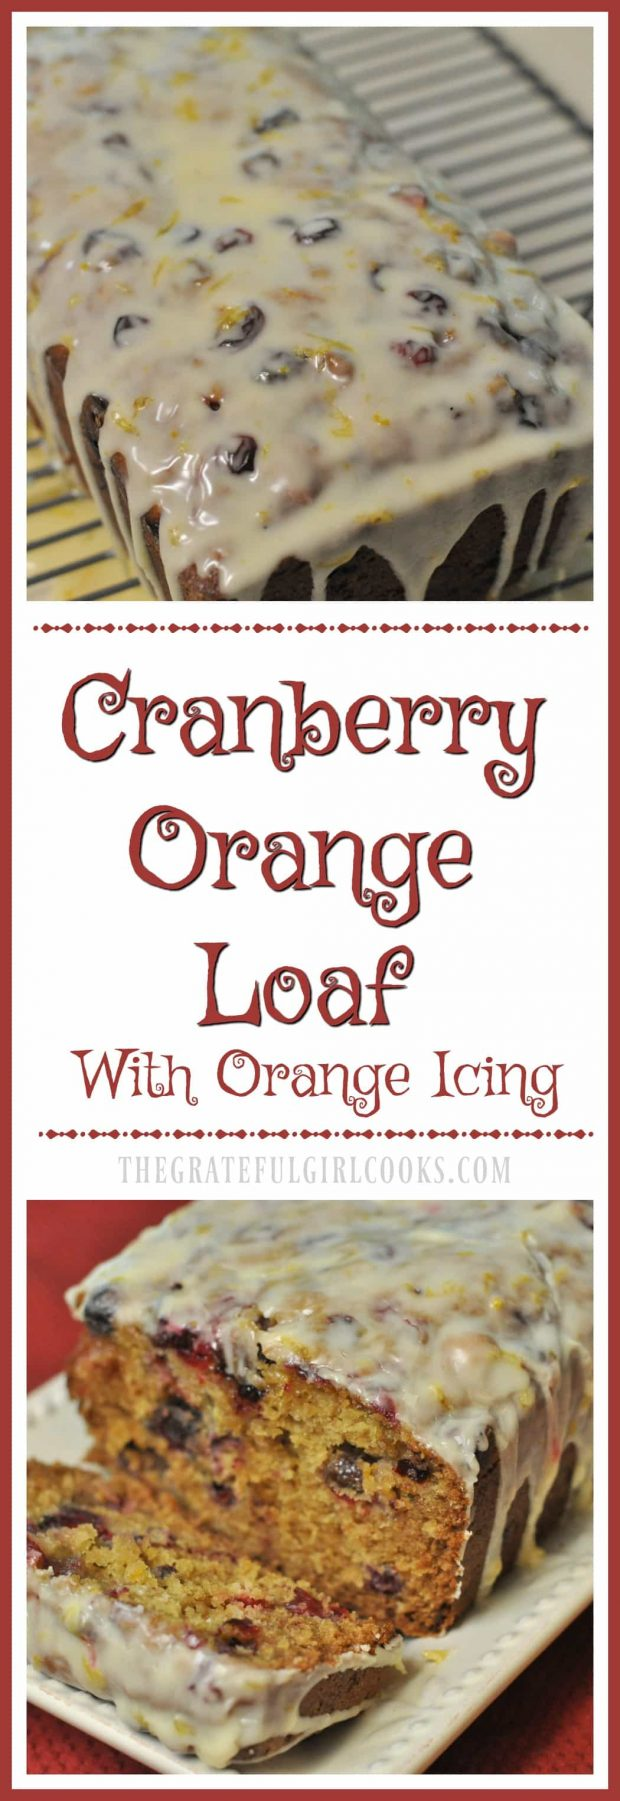 Cranberry Orange Loaf With Orange Icing / The Grateful Girl Cooks! Enjoy a taste of the holidays with a slice of this delicious, moist Cranberry Orange Loaf, topped with creamy Orange Icing!